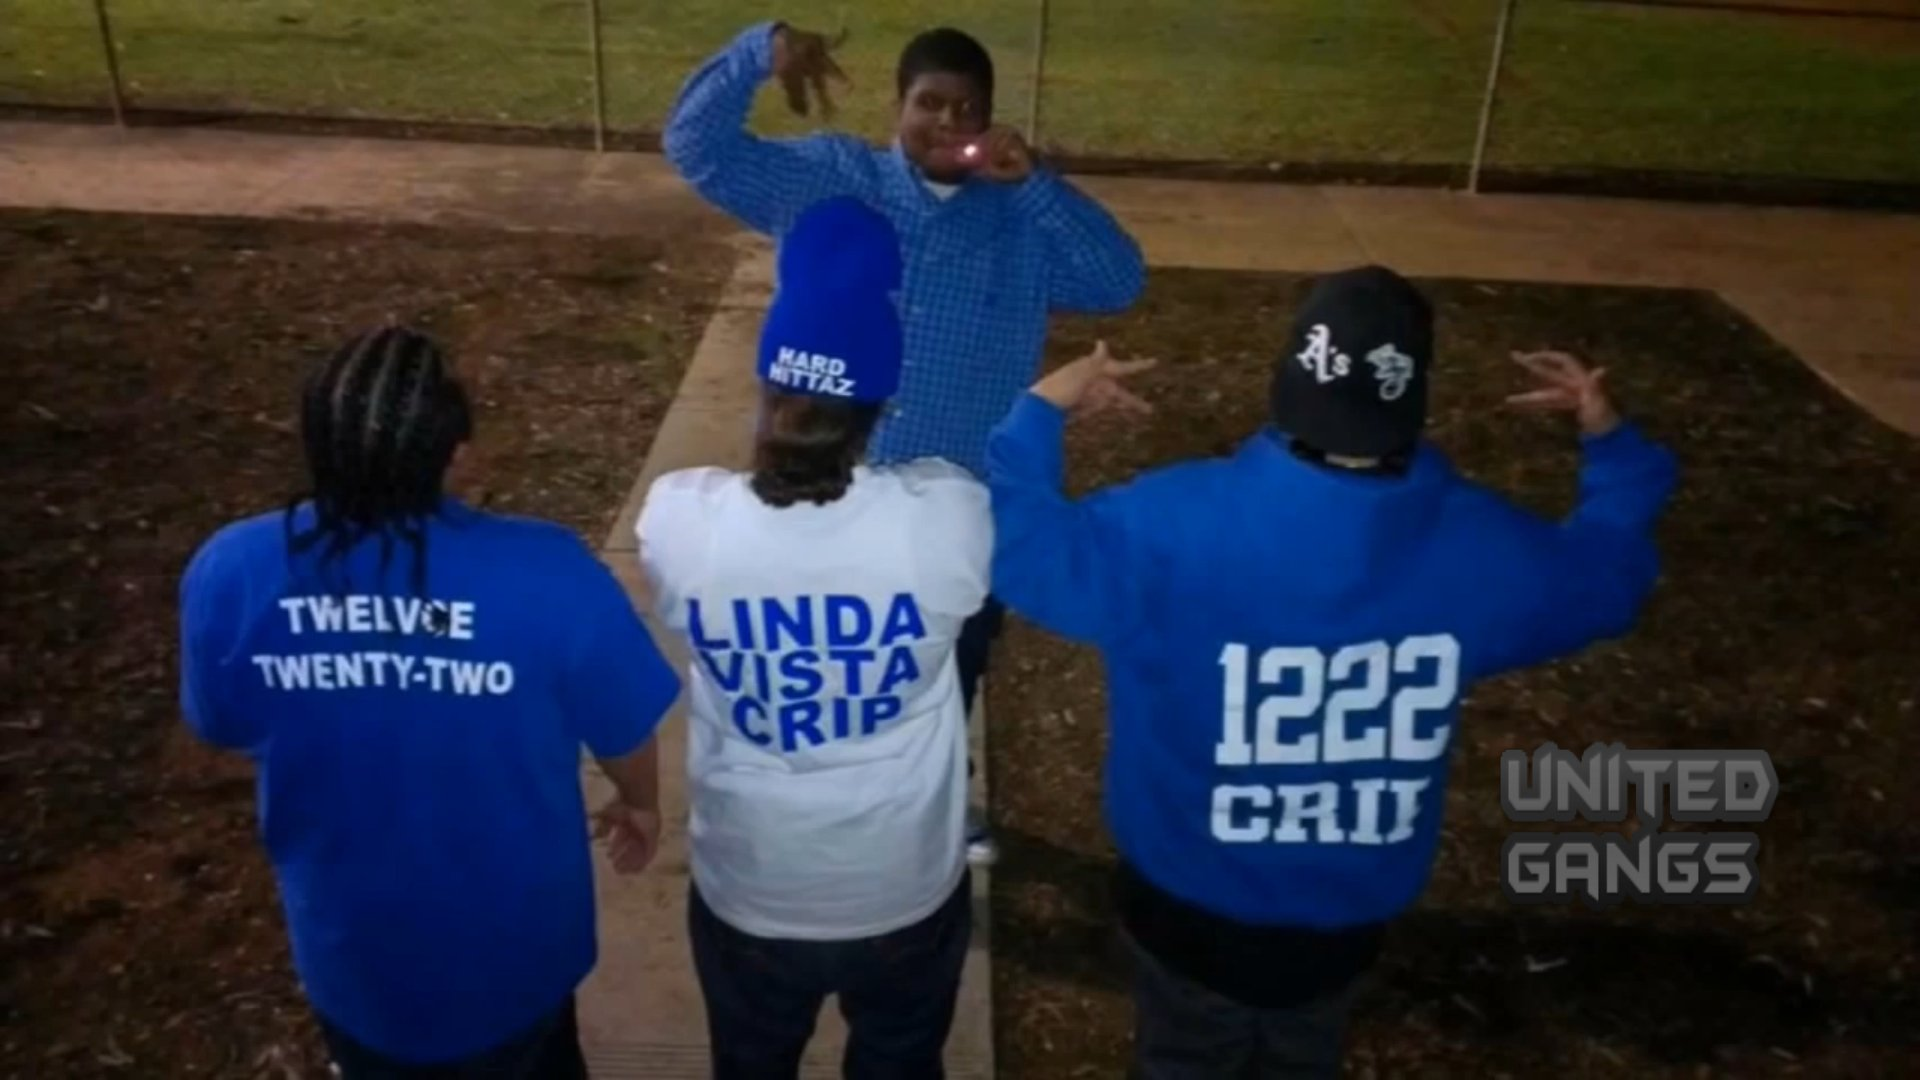 how to join a crip gang